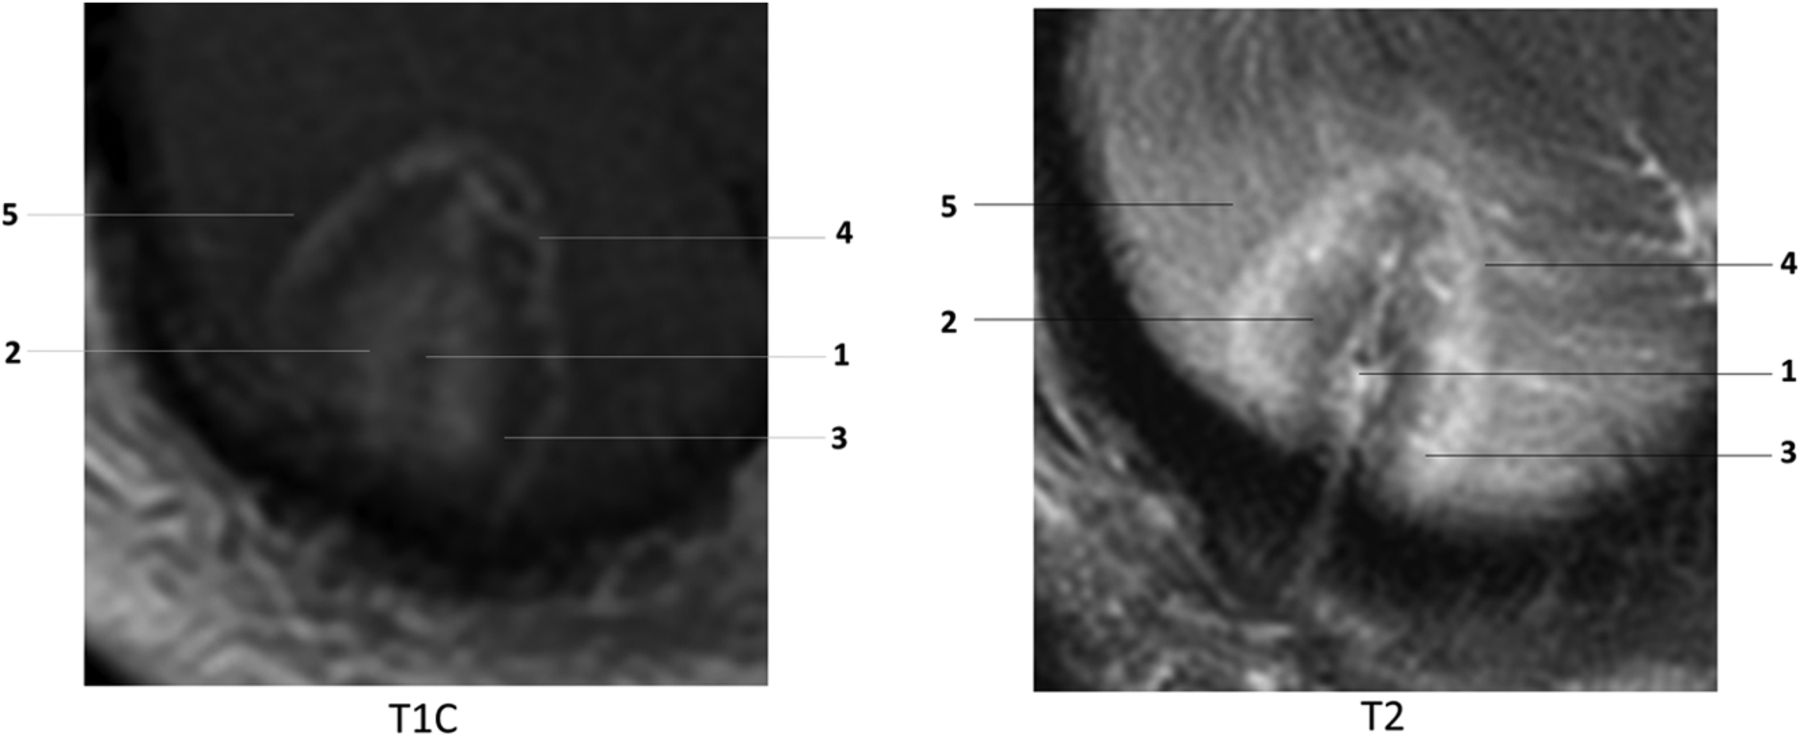 Current Applications of MRI-Guided Laser Interstitial Thermal